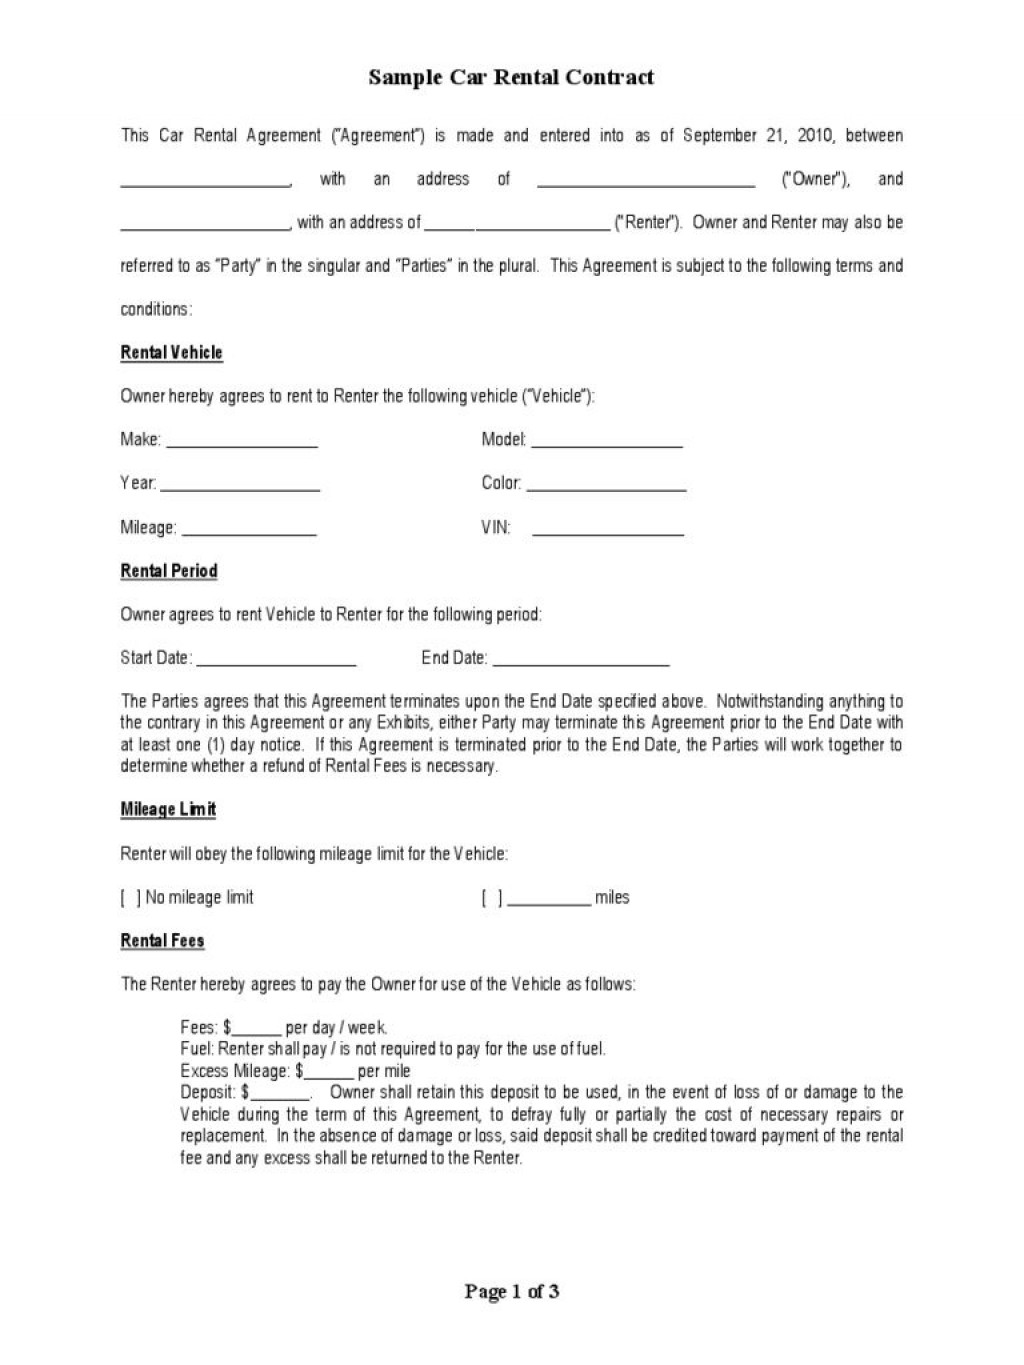 013 Fascinating Car Rental Agreement Template High Definition  Vehicle Rent To Own South Africa SingaporeLarge